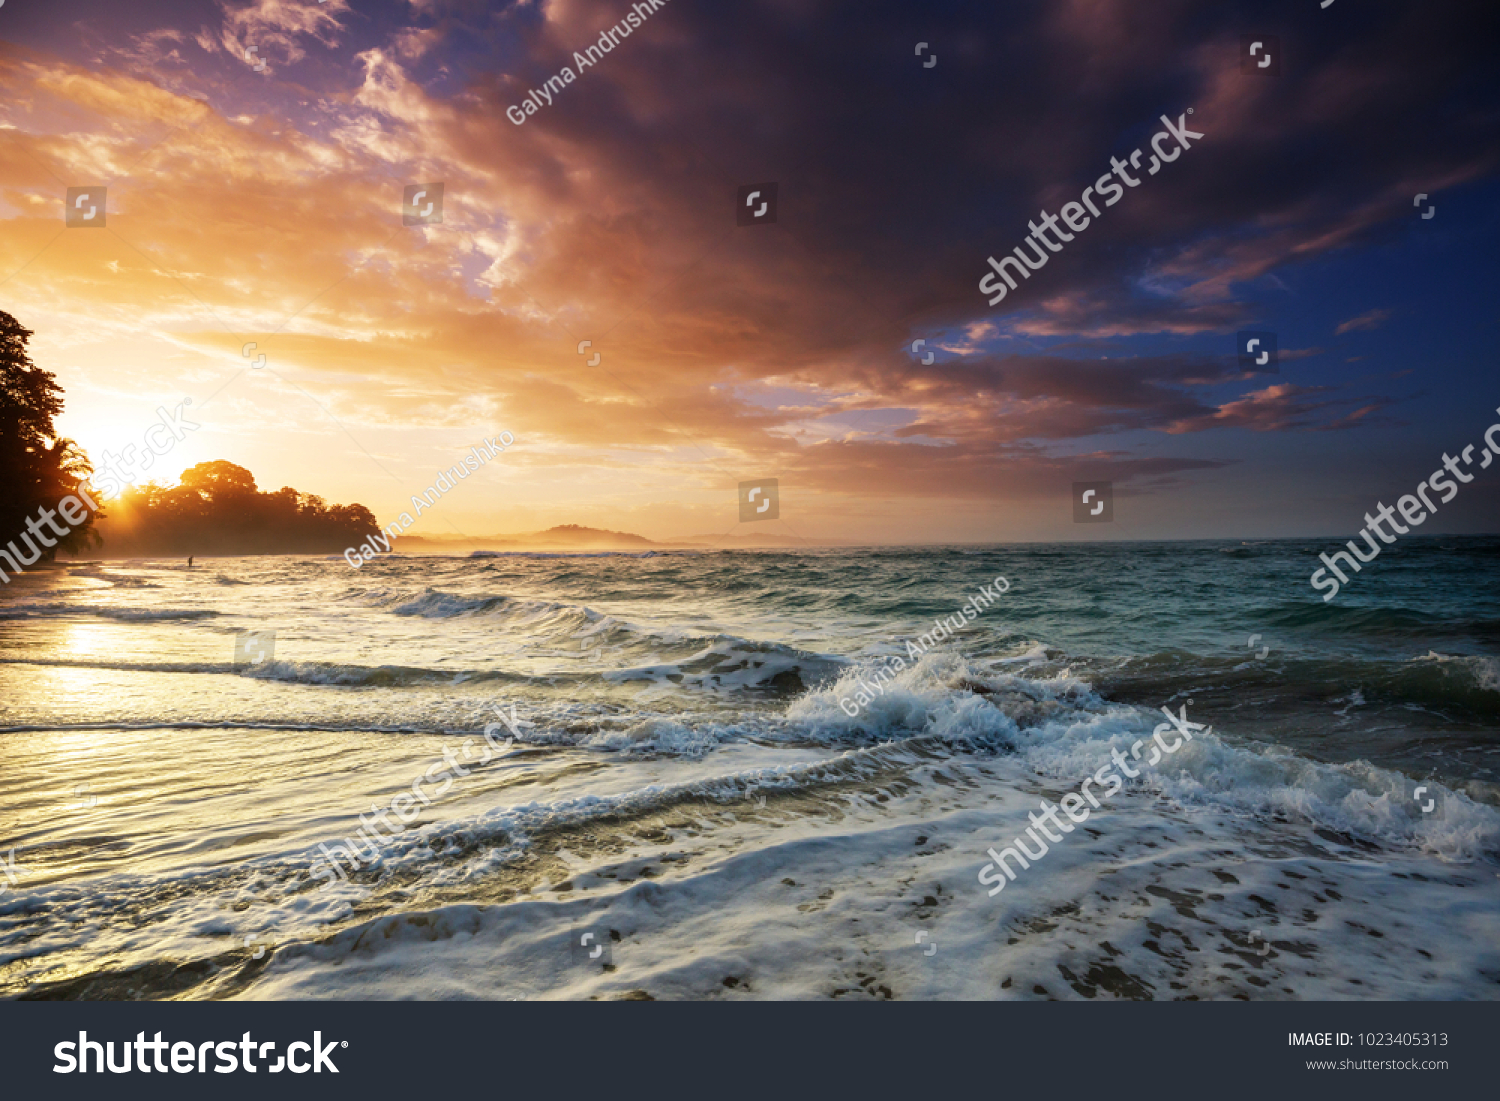 Scenic Colorful Sunset At The Sea Coast Good For Wallpaper Or